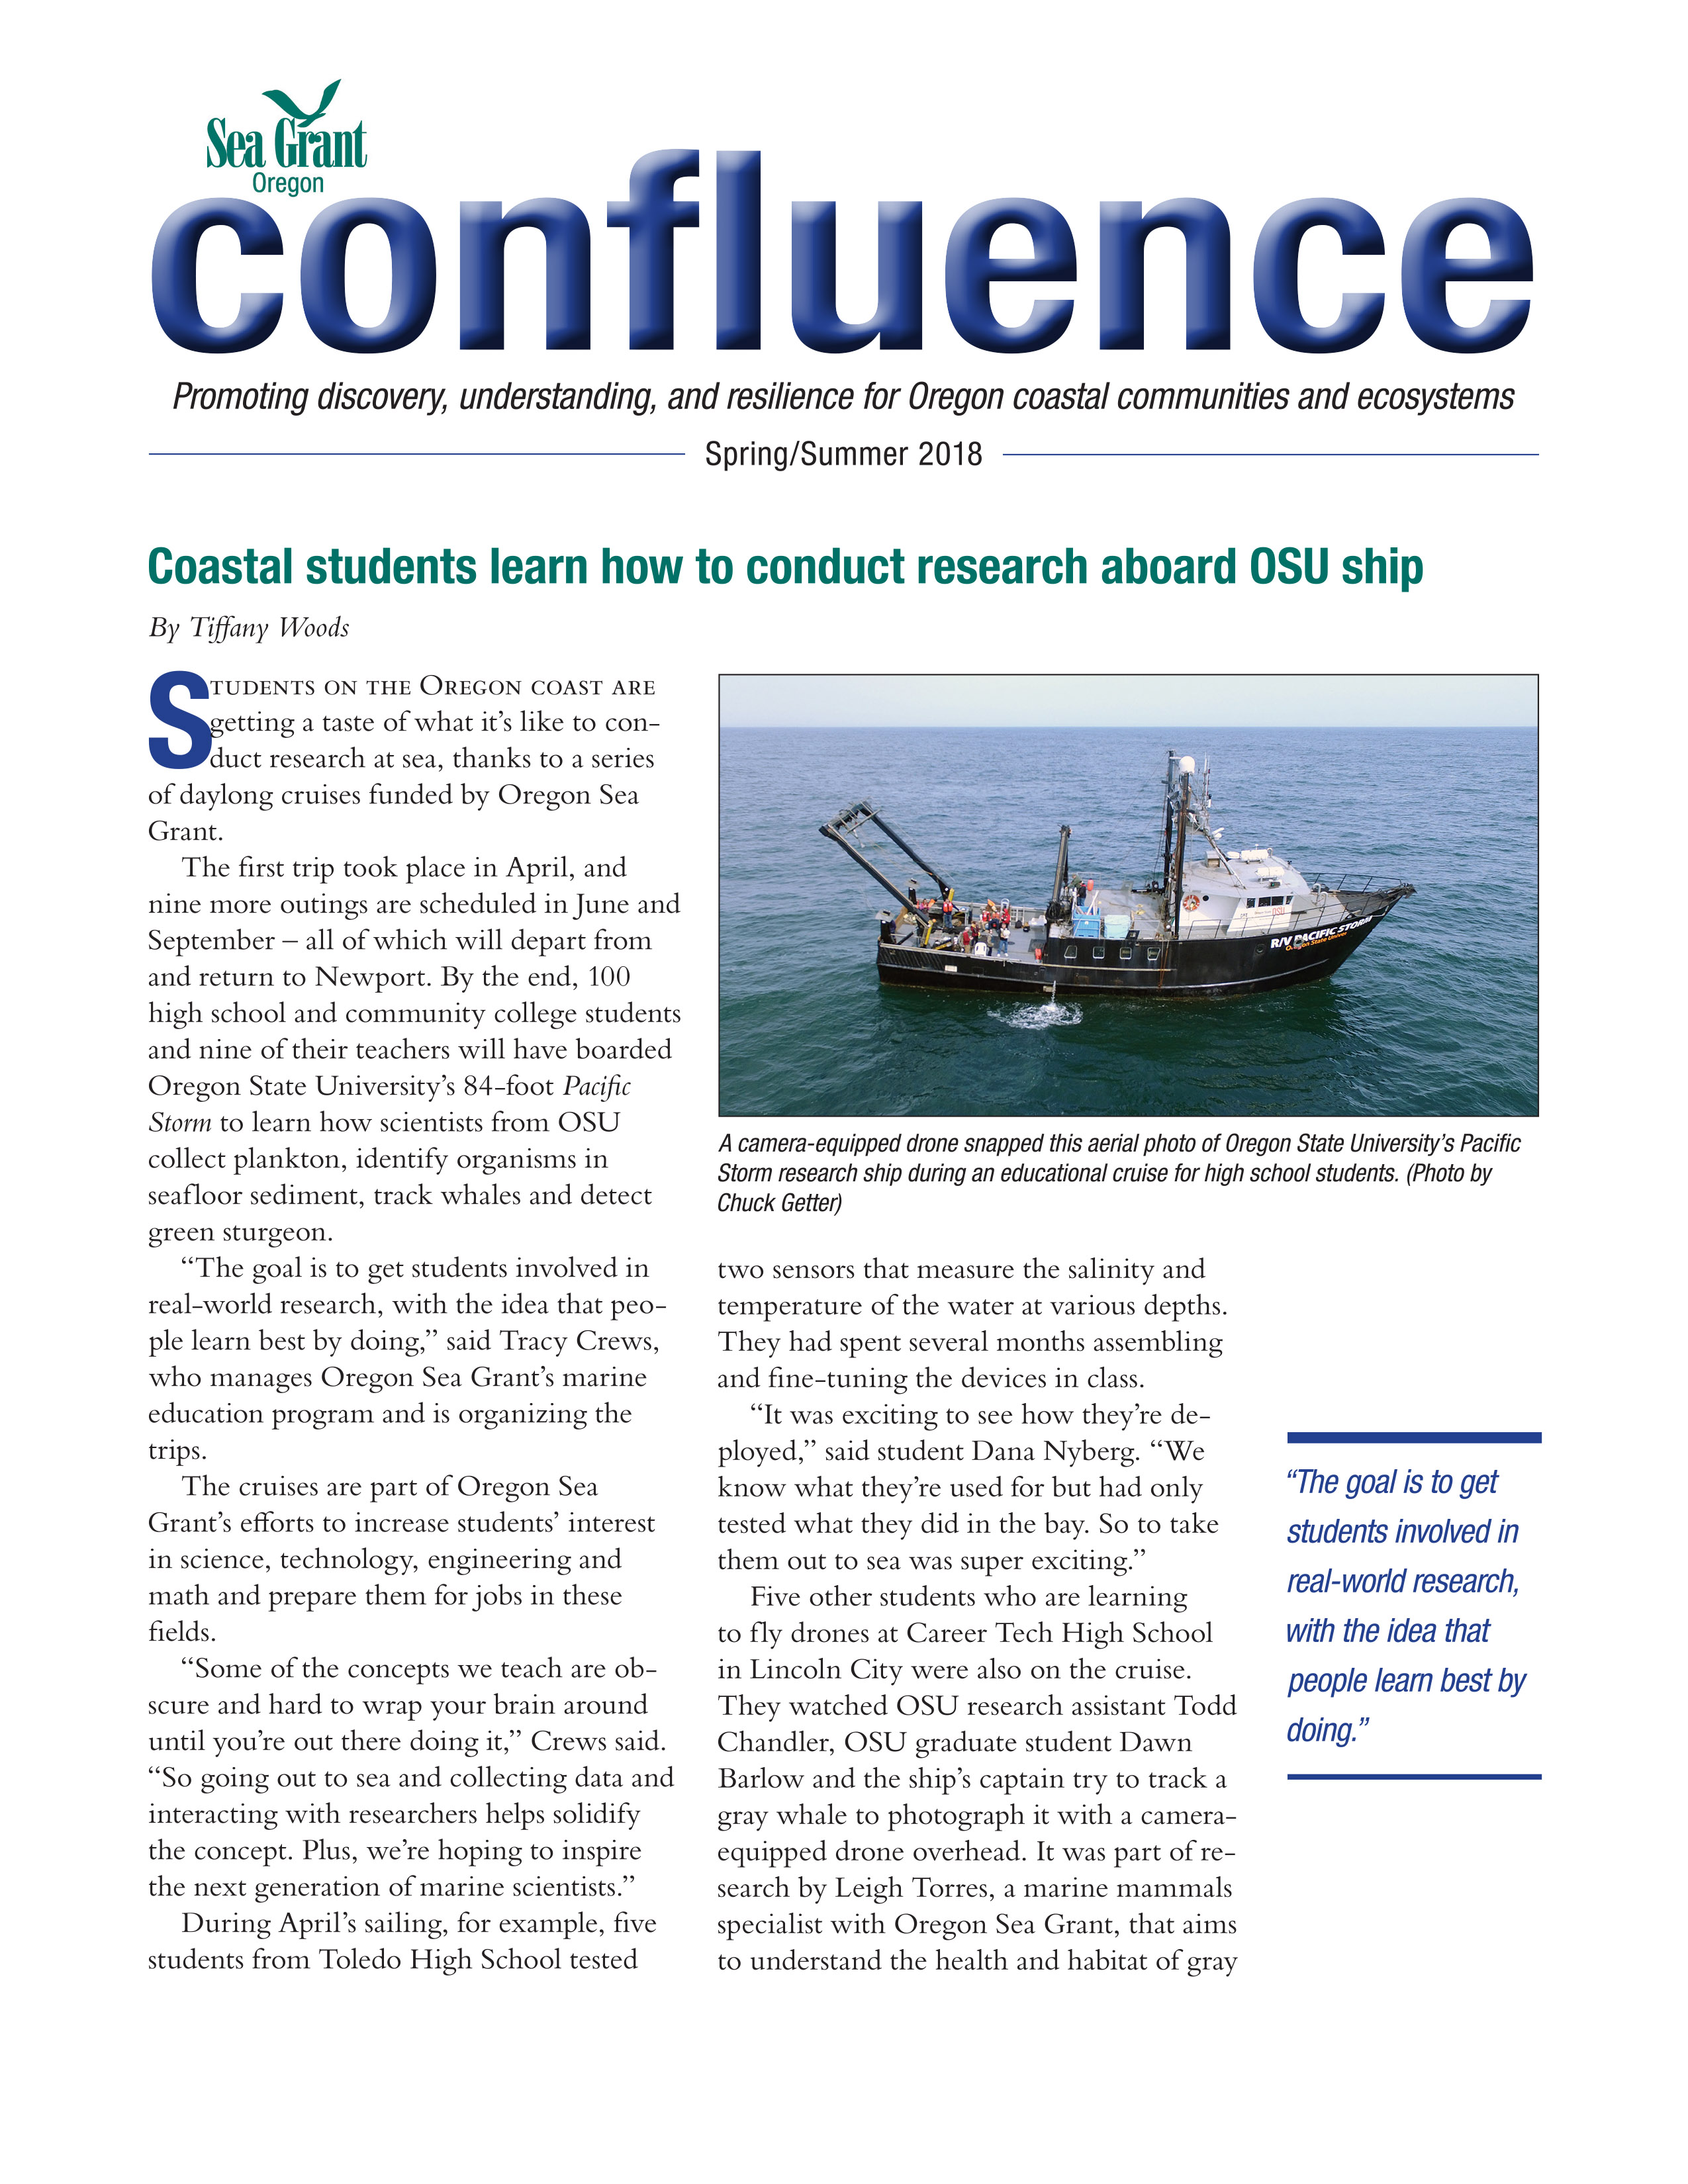 Cover page of Confluence newsletter, spring/summer 2018